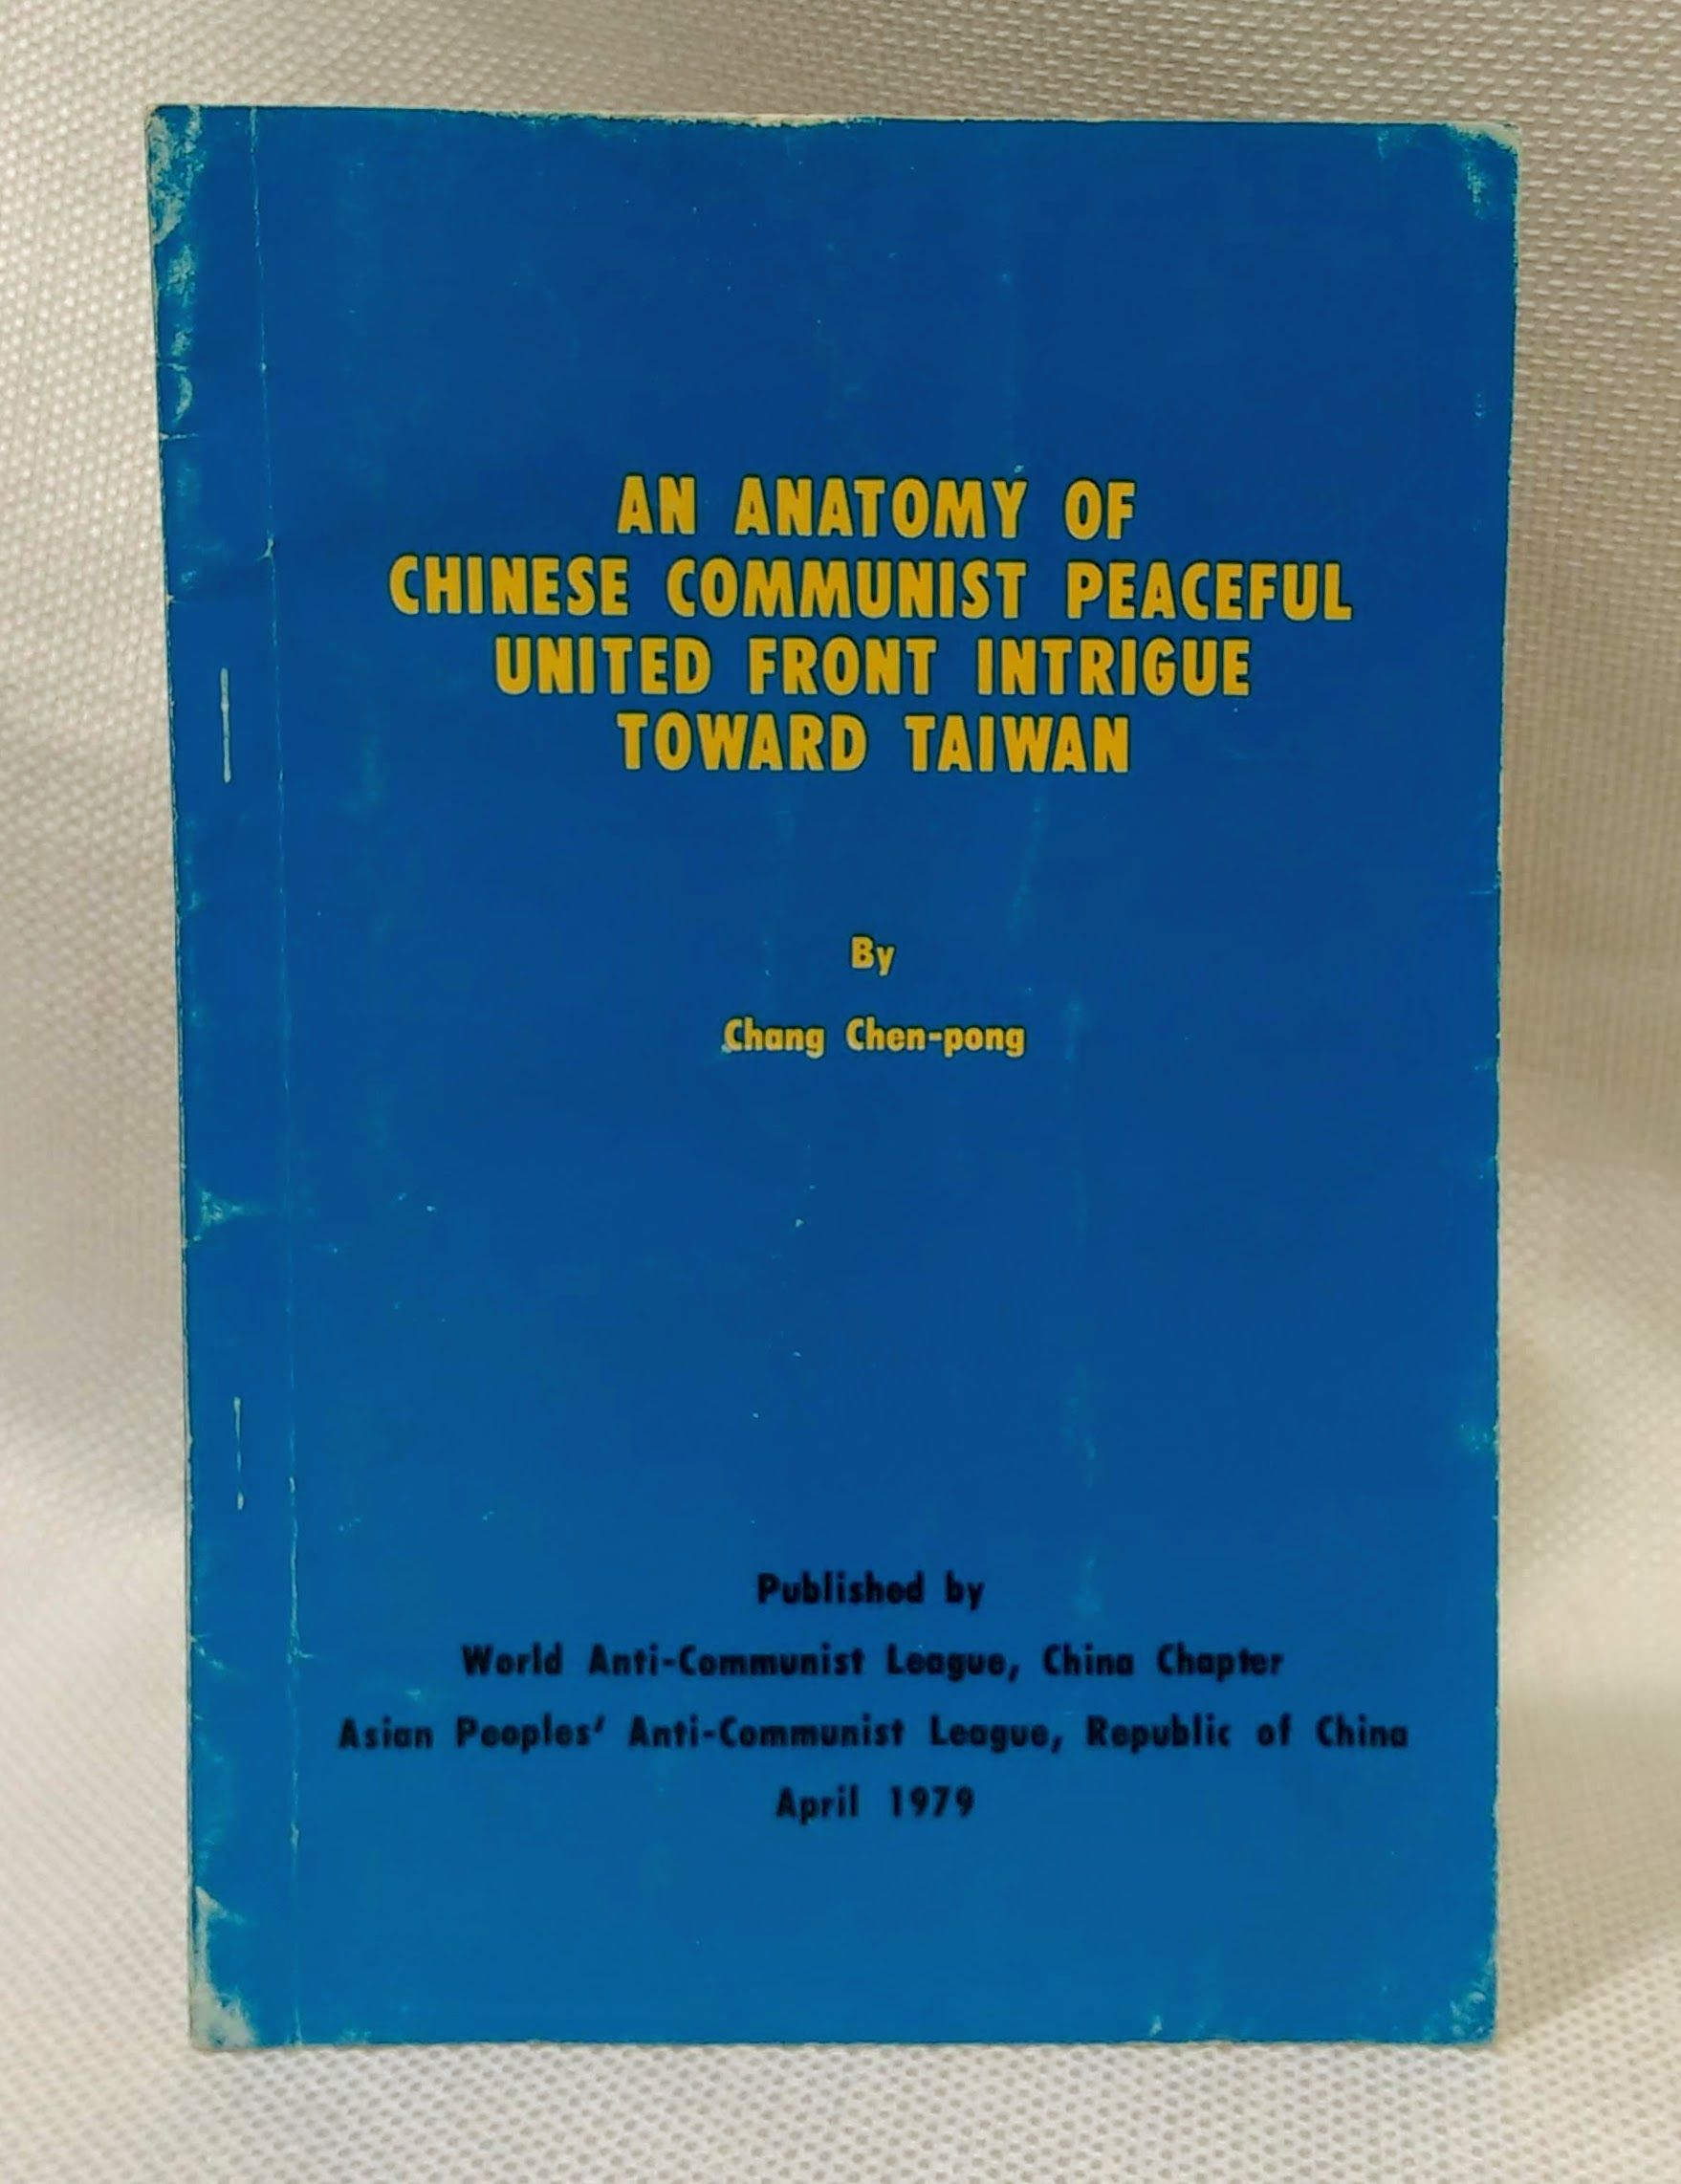 An anatomy of Chinese Communist peaceful united front intrigue toward Taiwan (Pamphlet XXIV 219 April 1979), Chang, Chen-pong